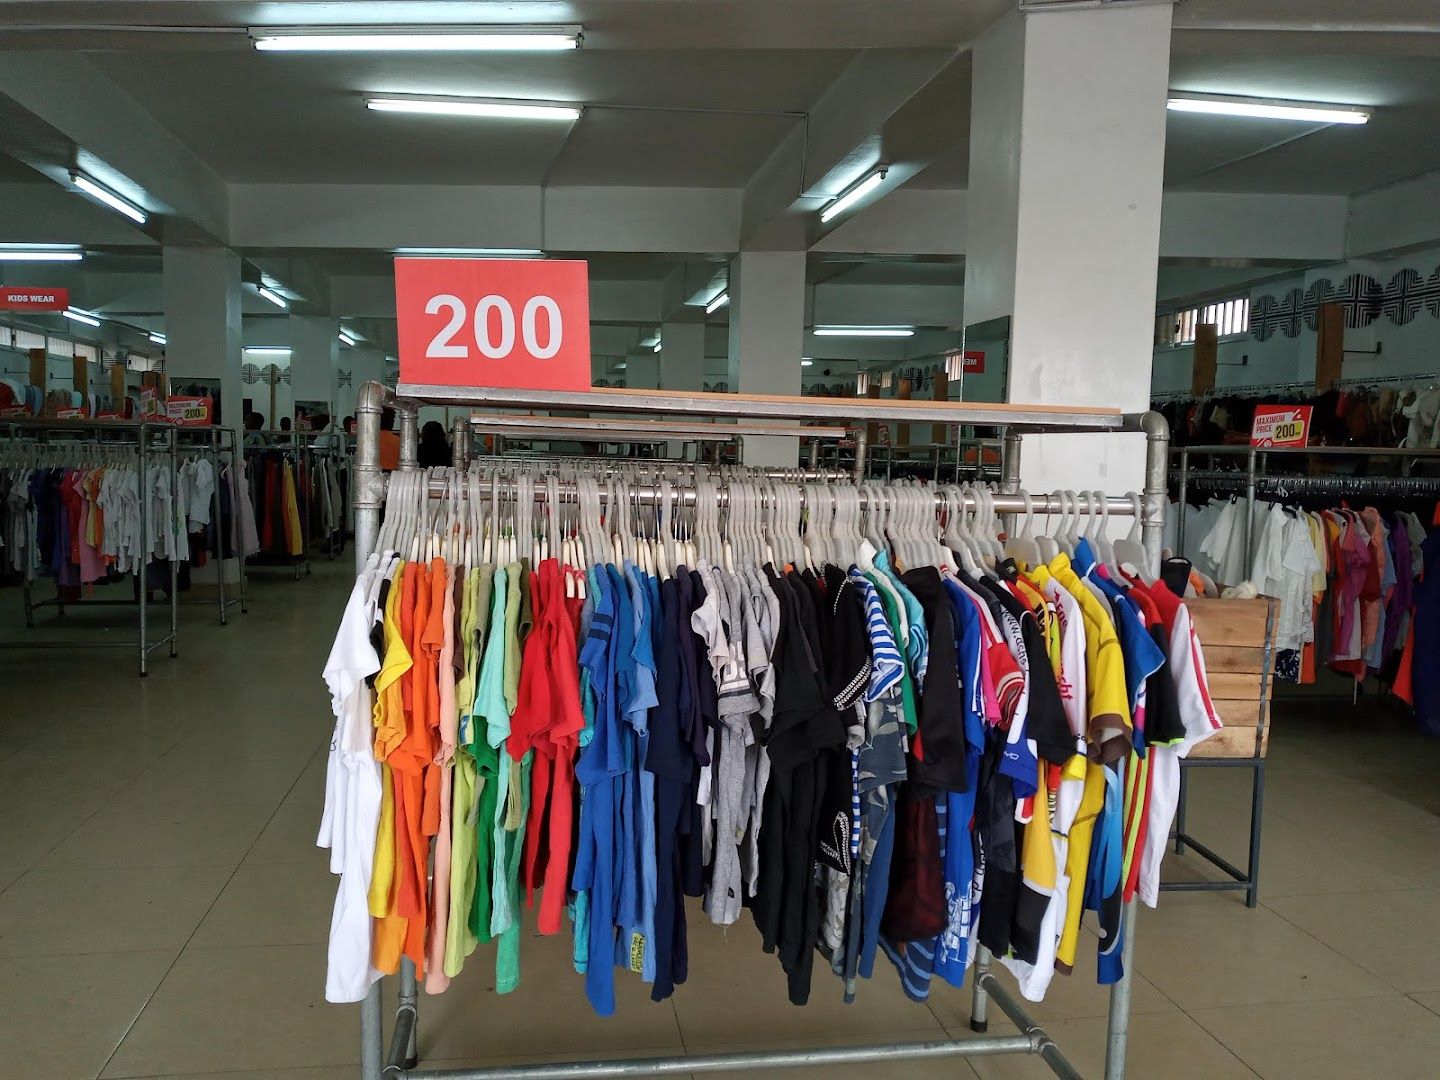 Think Twice Second Hand Clothes - Mlolongo - Clothing Store in Mlolongo